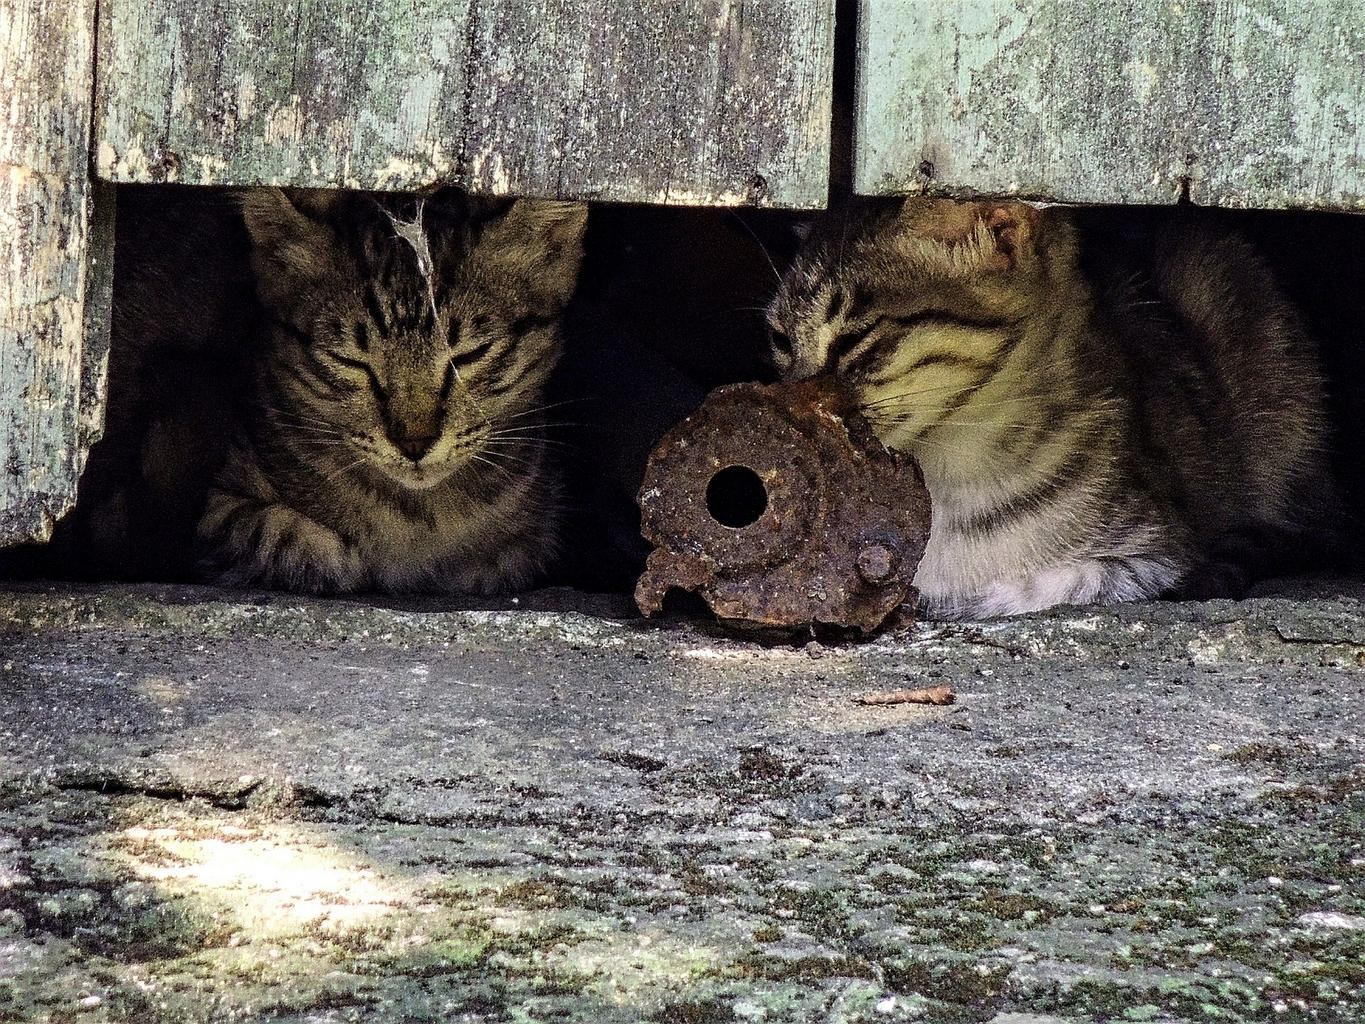 Lima, Ohio Overrun by Feral Cats